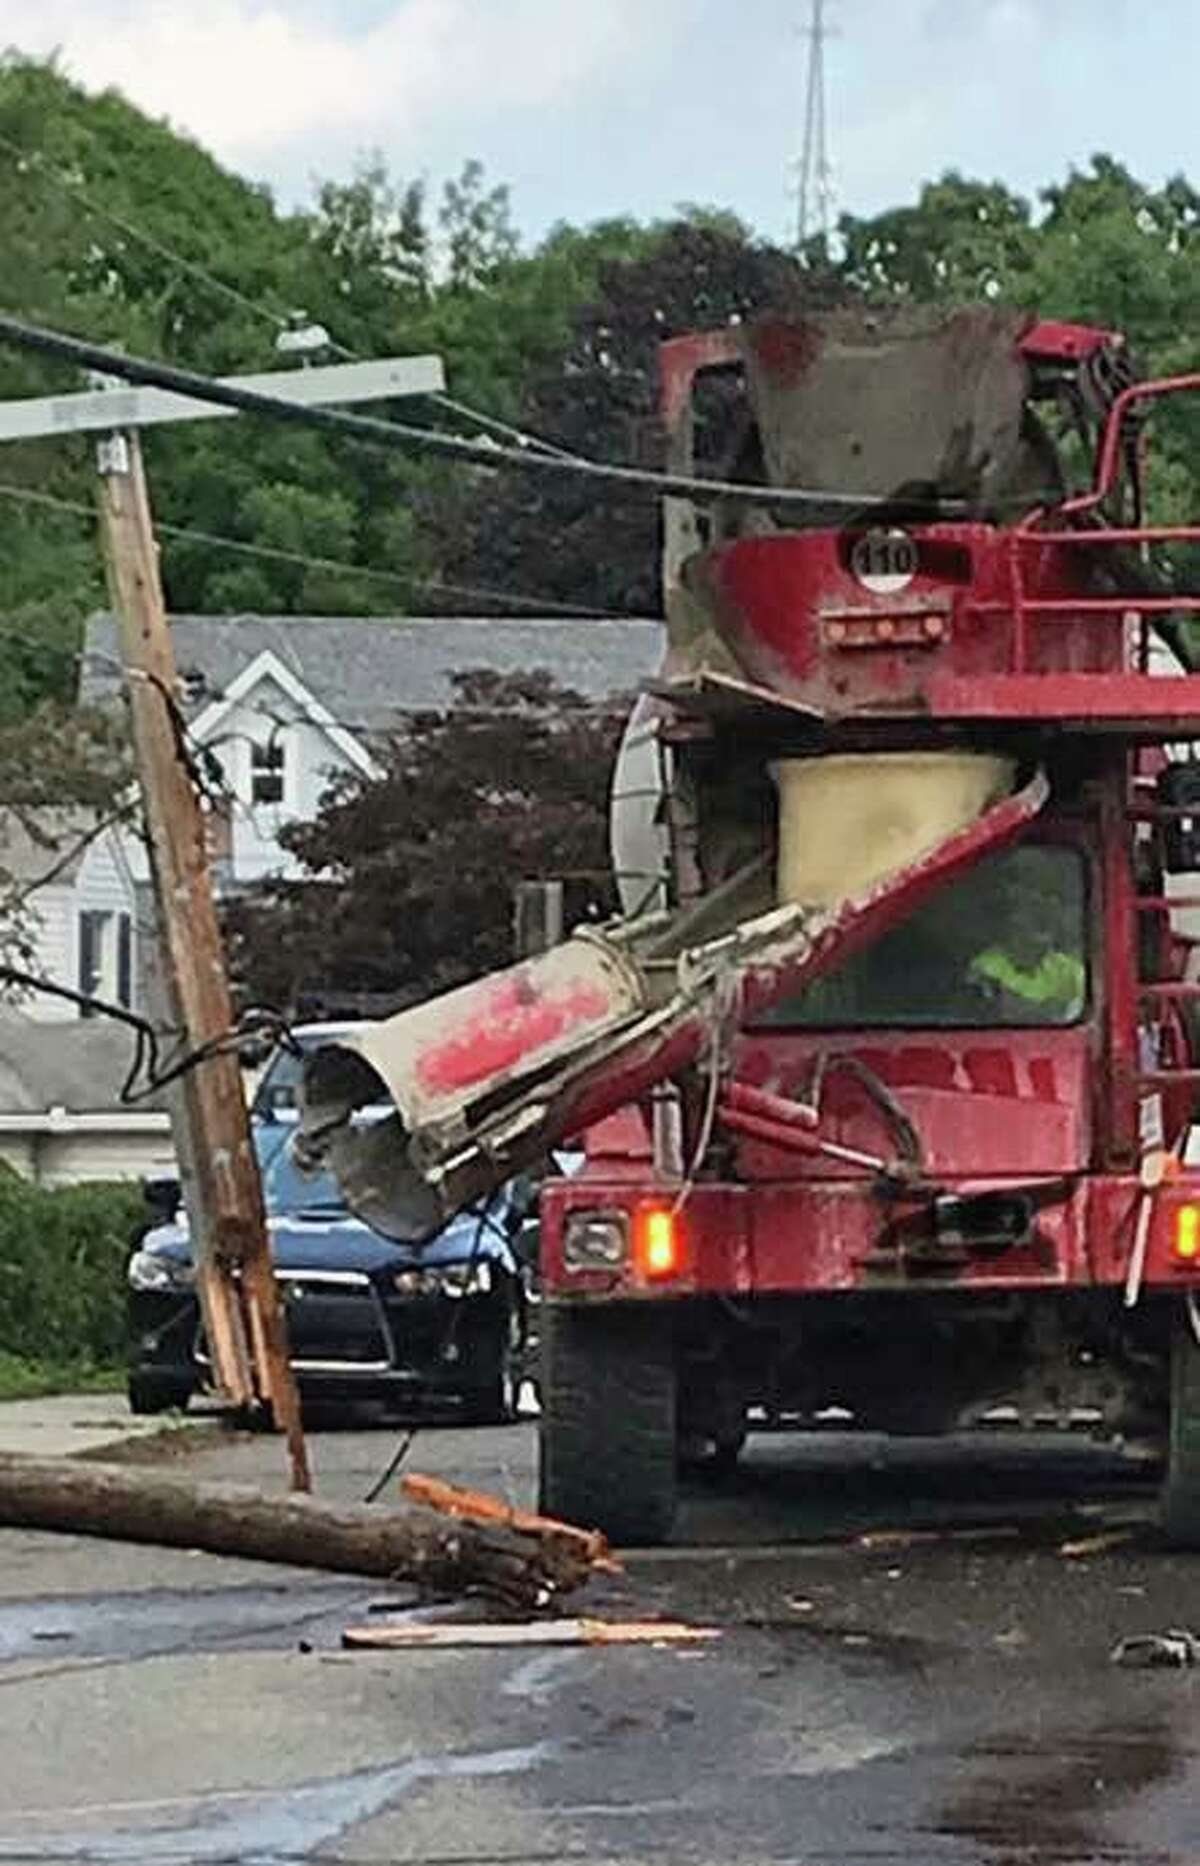 Fire officials from the Citizens' Engine Co. No. 2 said the truck got hung up on high tension wires. Since the high tension wires were entangled with the vehicle, the driver was told to remain in the truck.